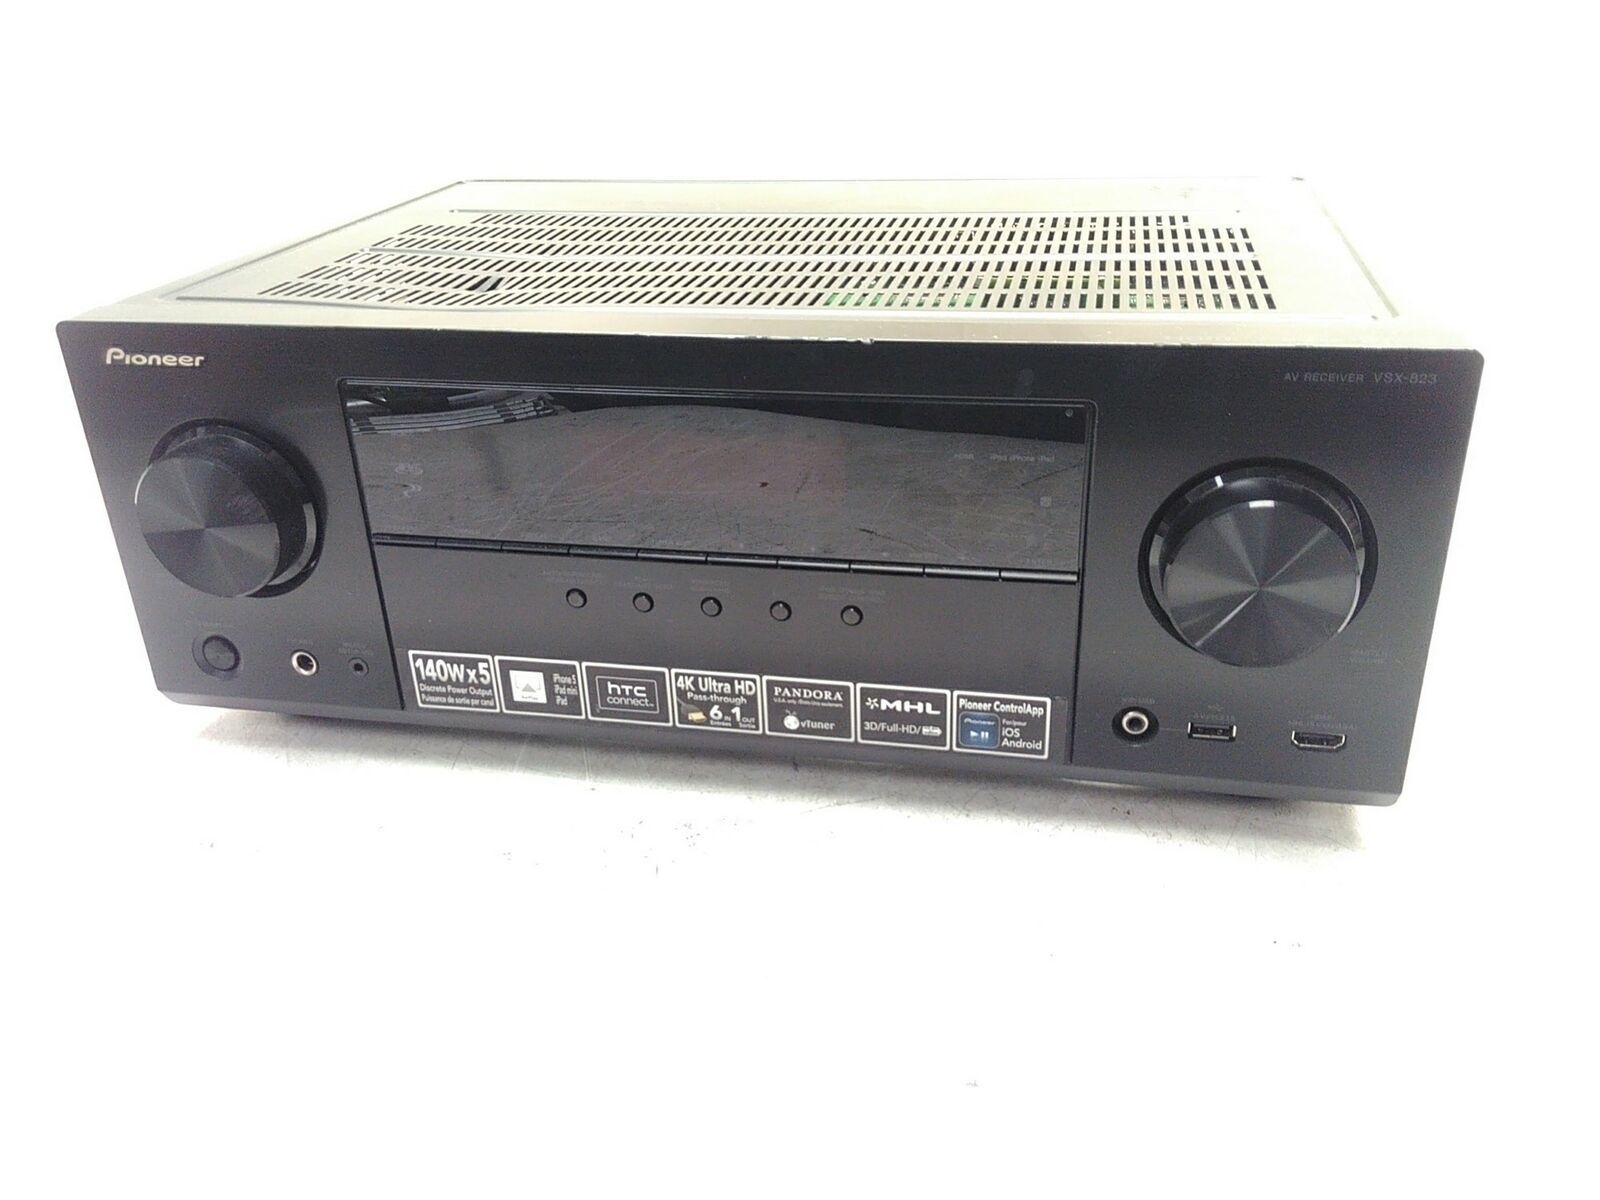 Pioneer VSX-823 140W 4K HDMI Home Receiver Limited Testing AS-IS Parts - $72.00